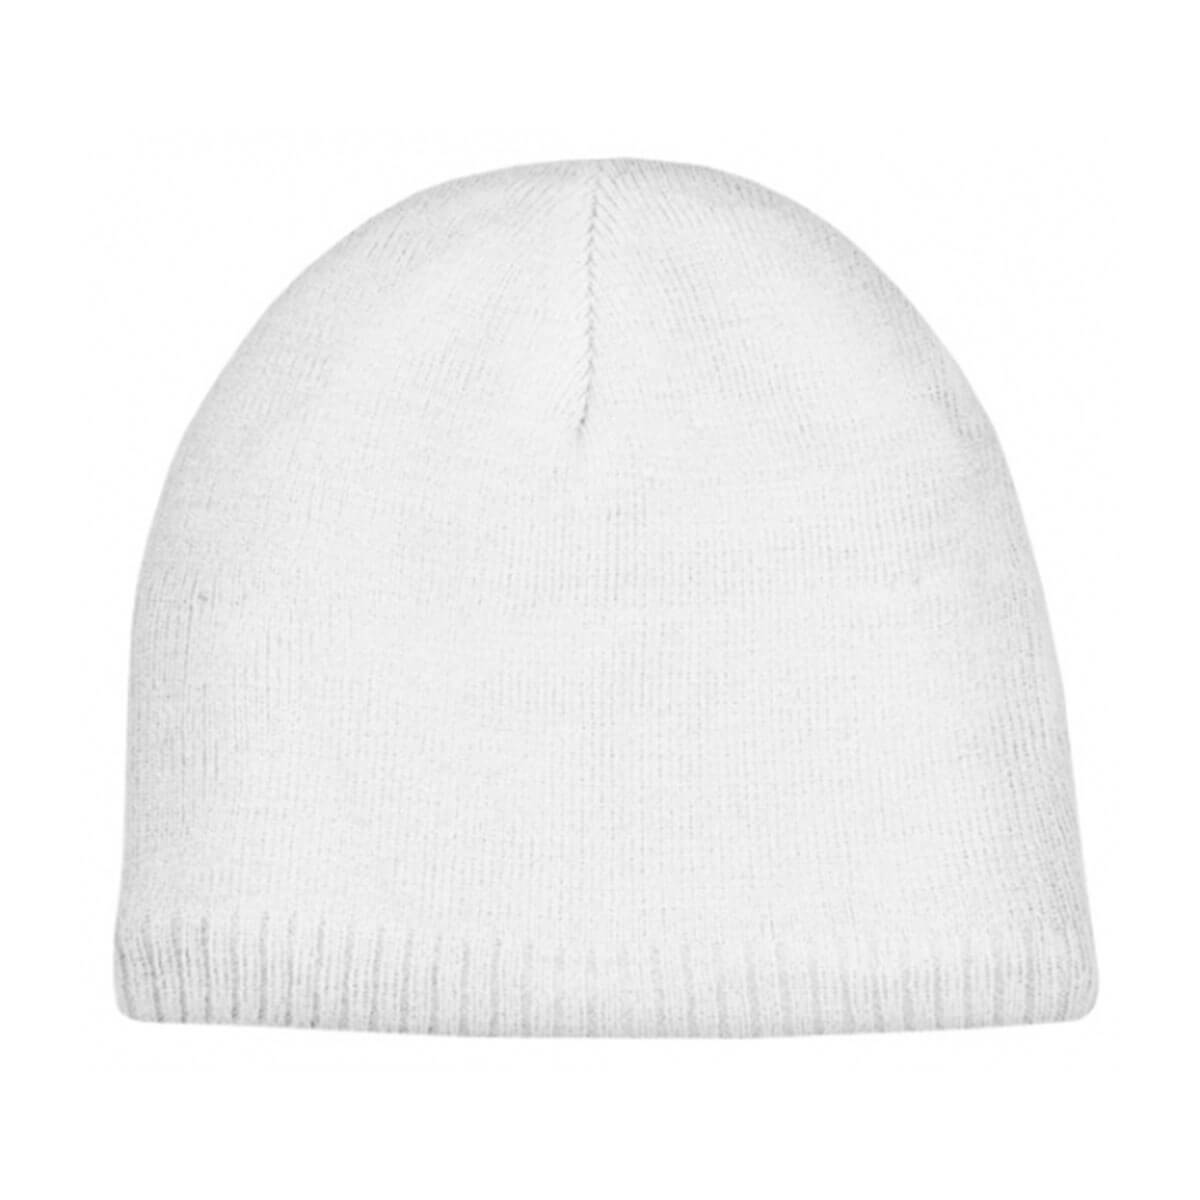 Acrylic/Polar Fleece Beanie-White